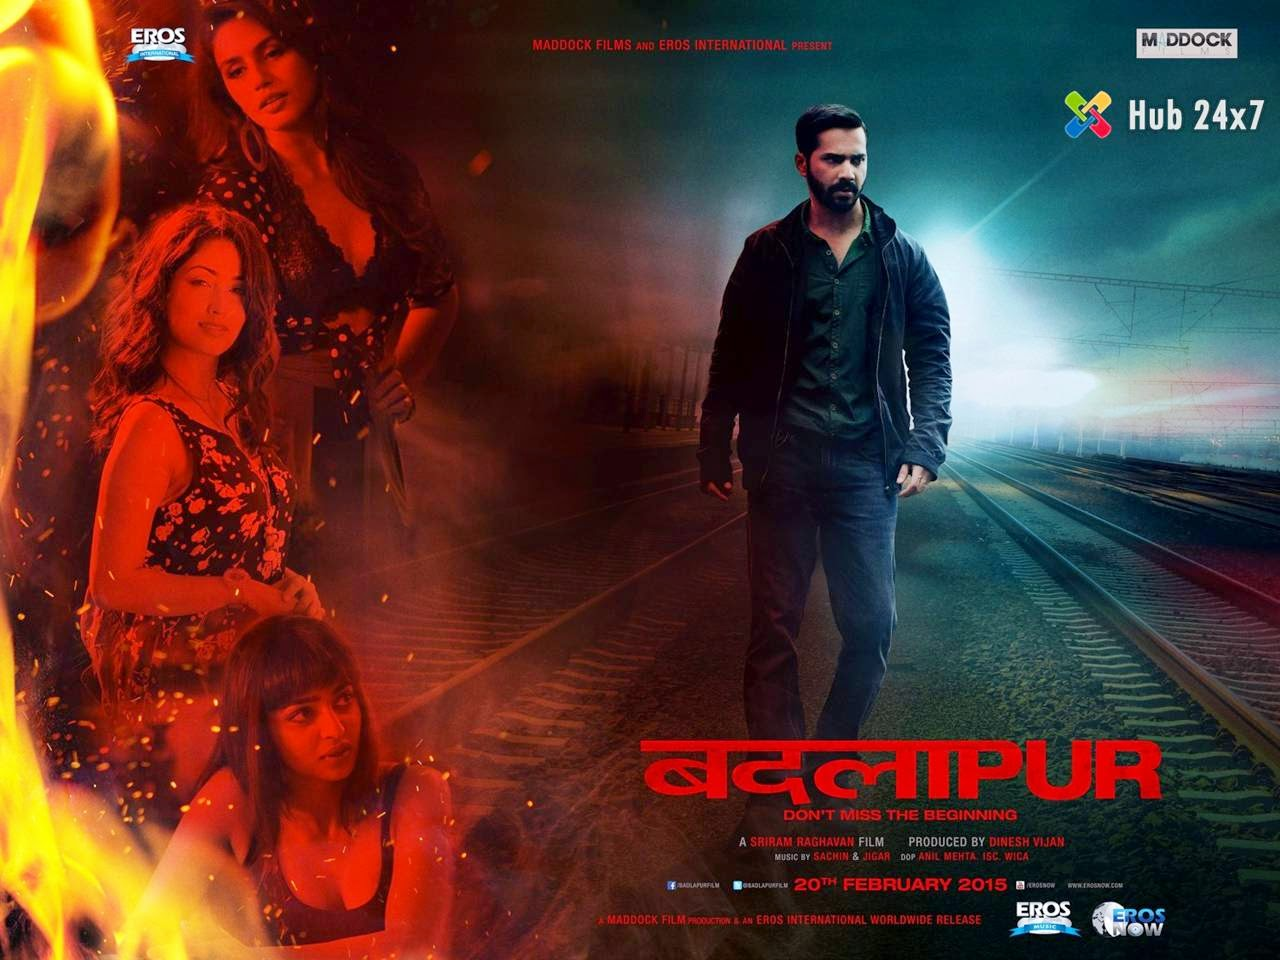 Badlapur wins praise from the industry - Cinema Hub24x7